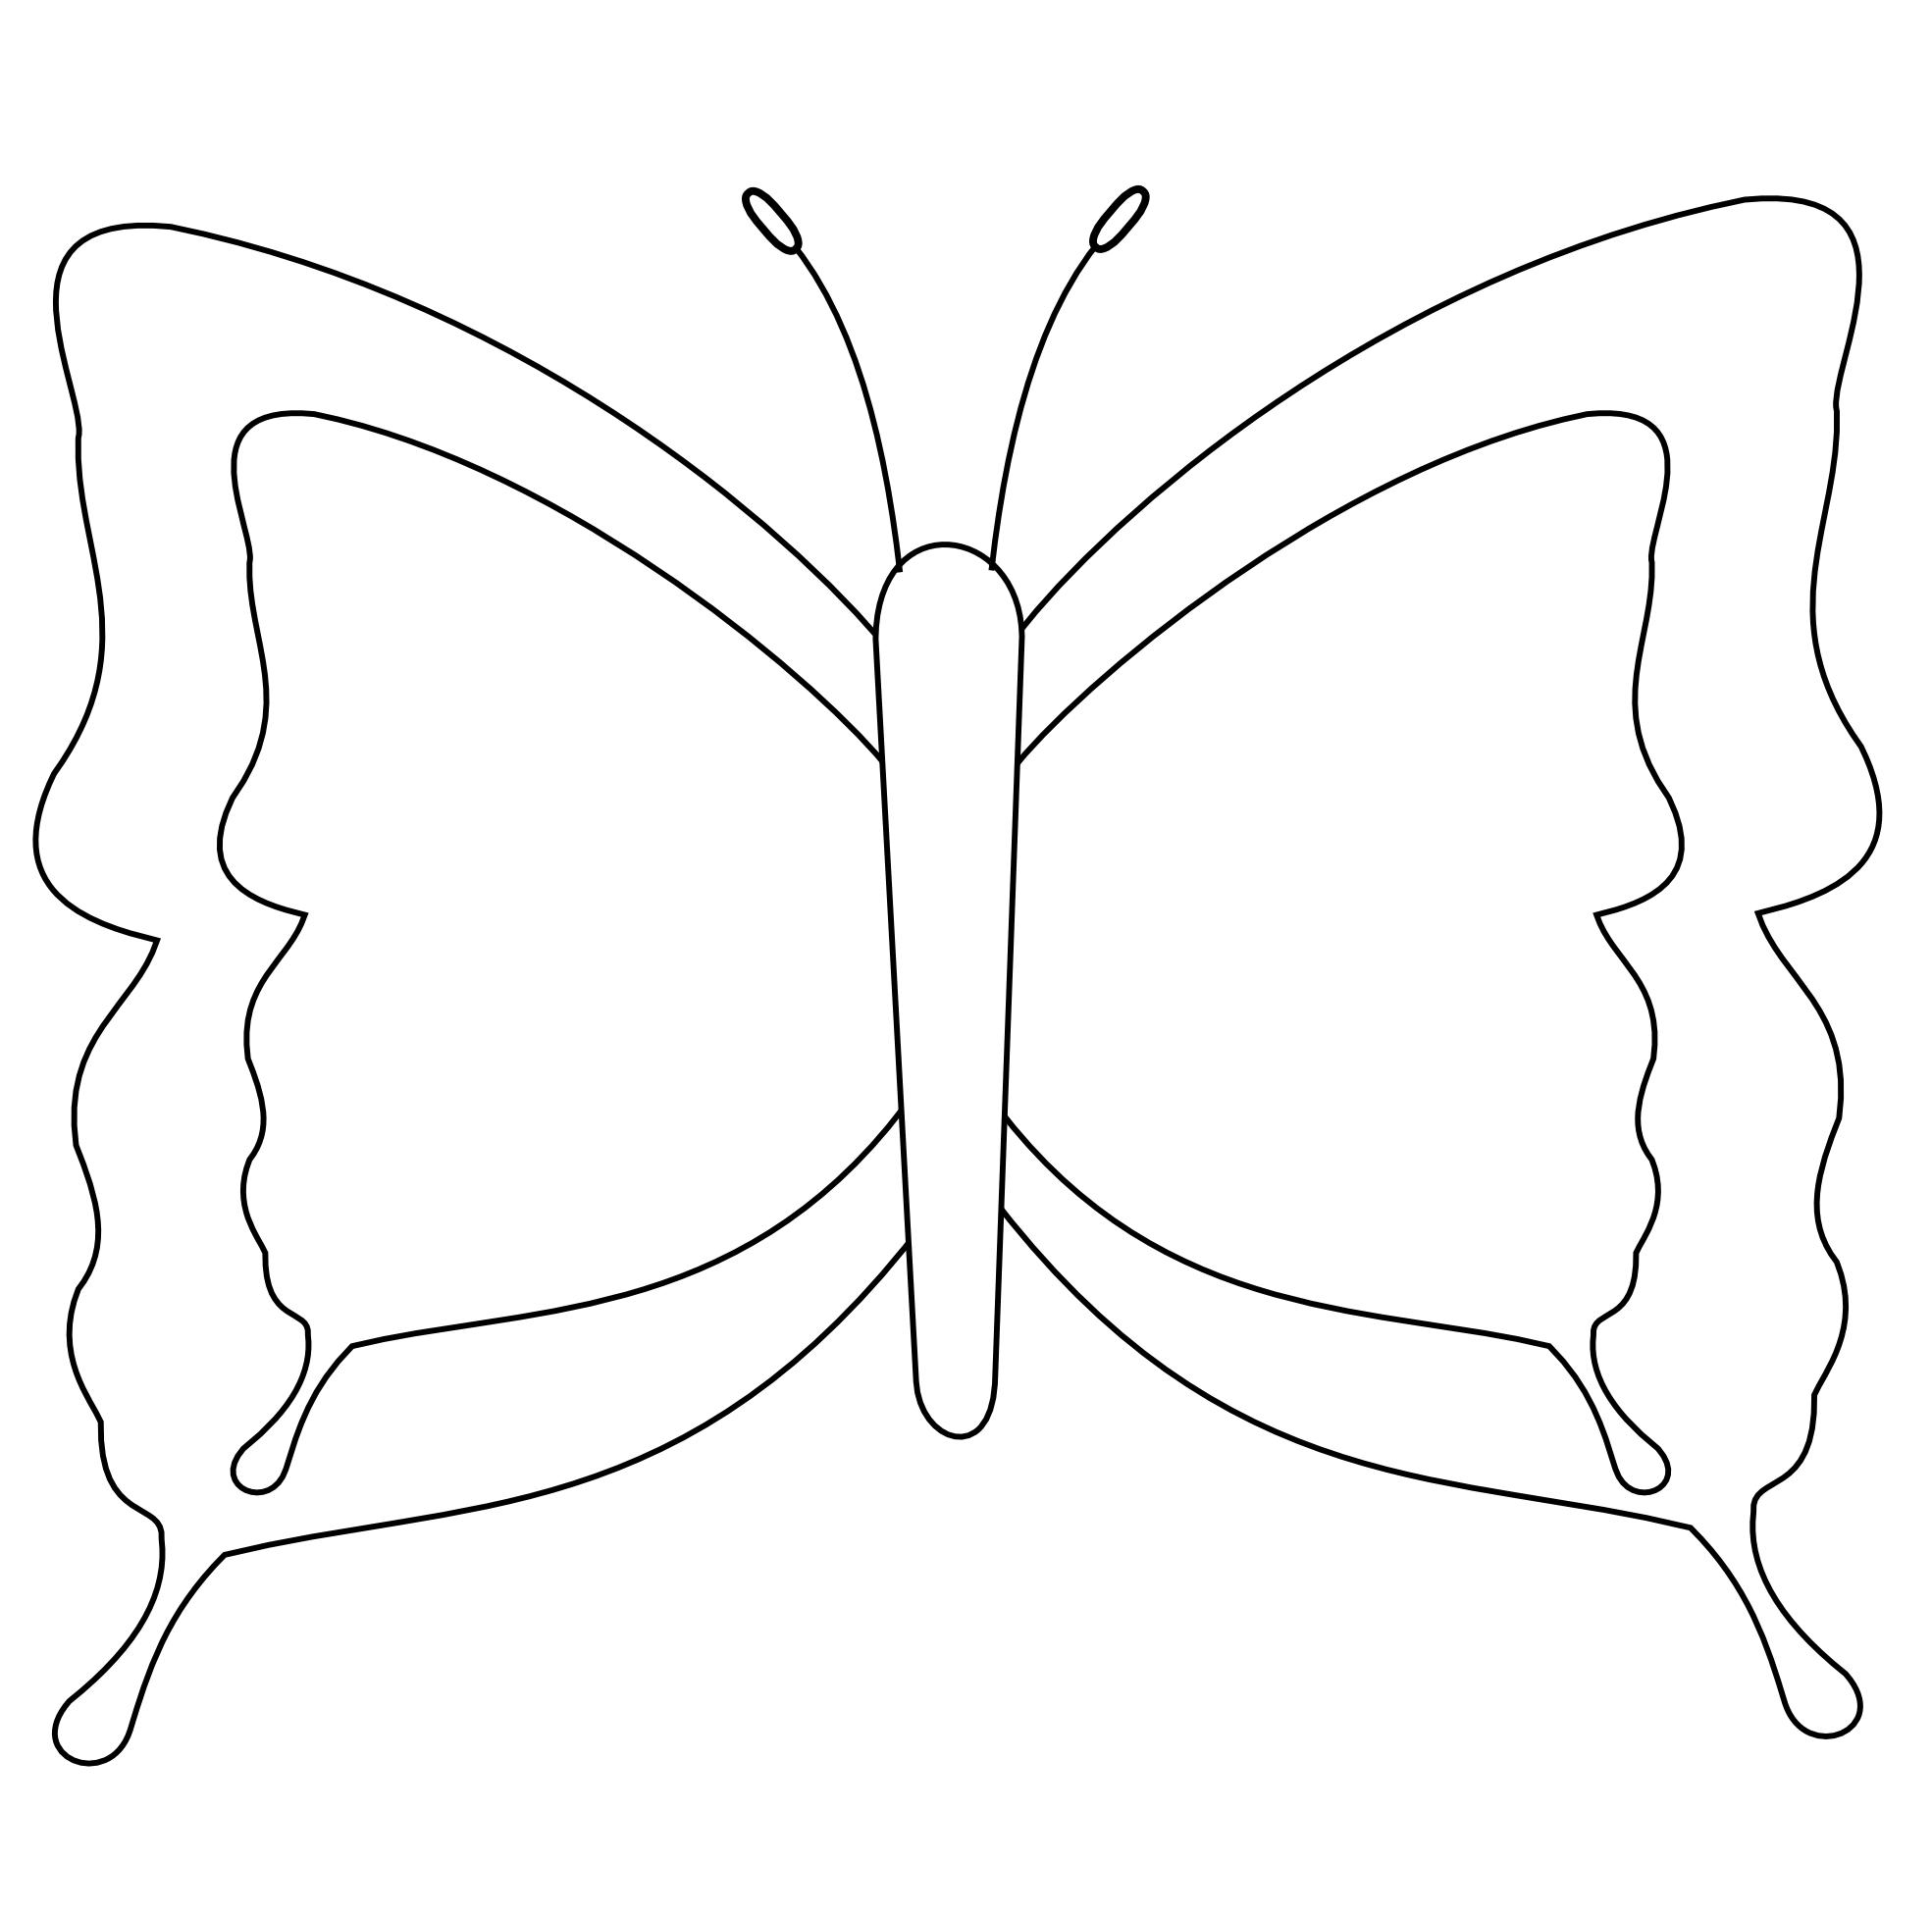 Black And White Butterfly Images